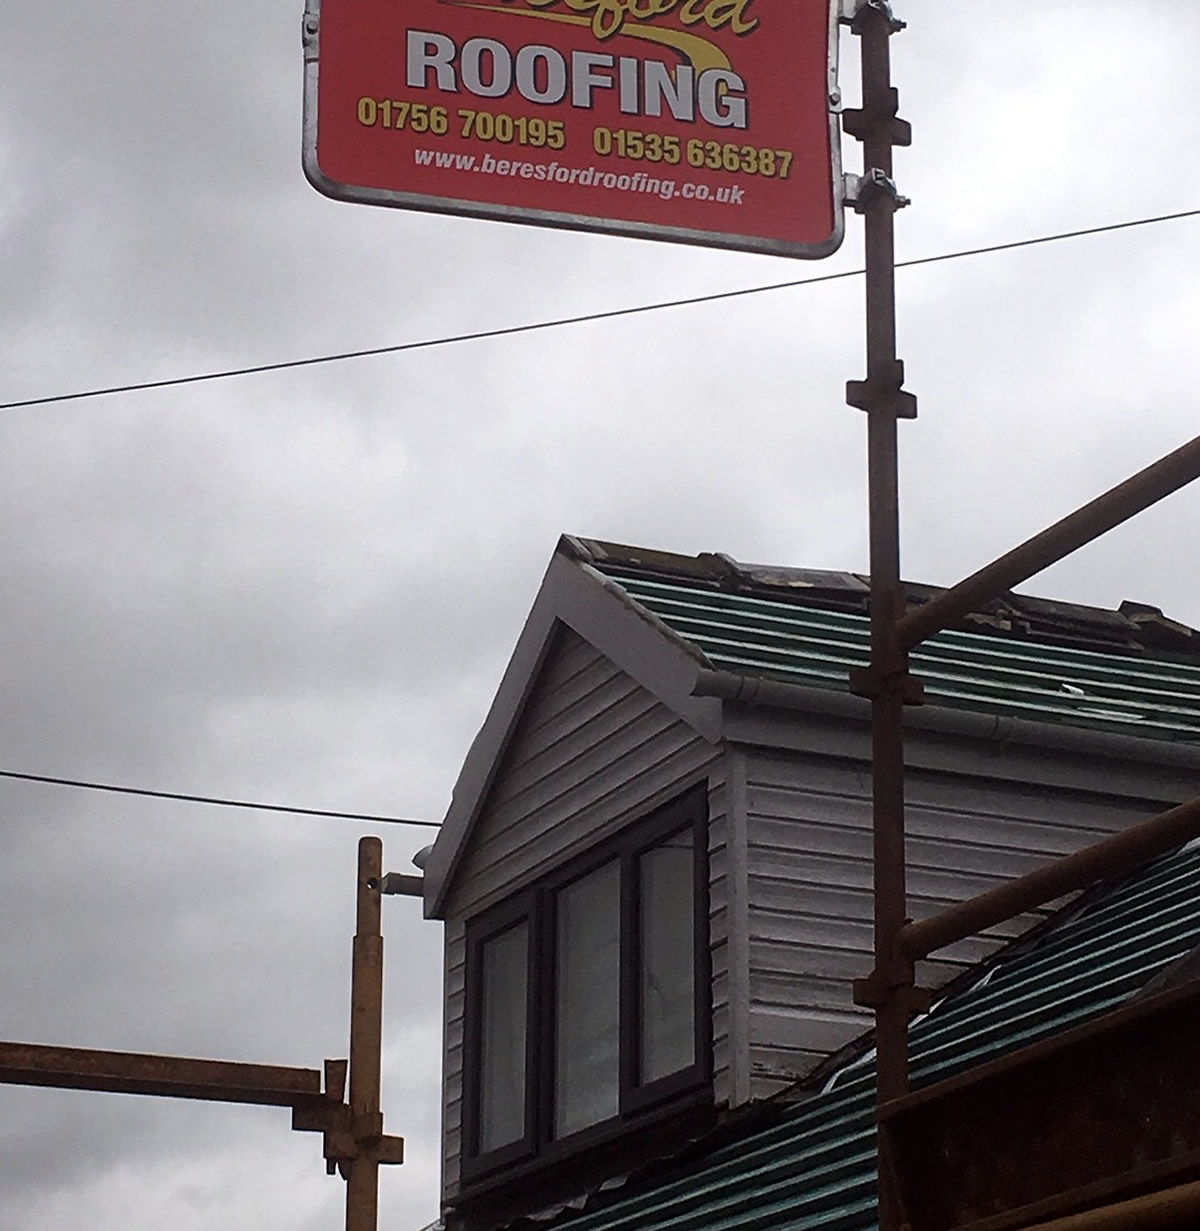 roofing sign